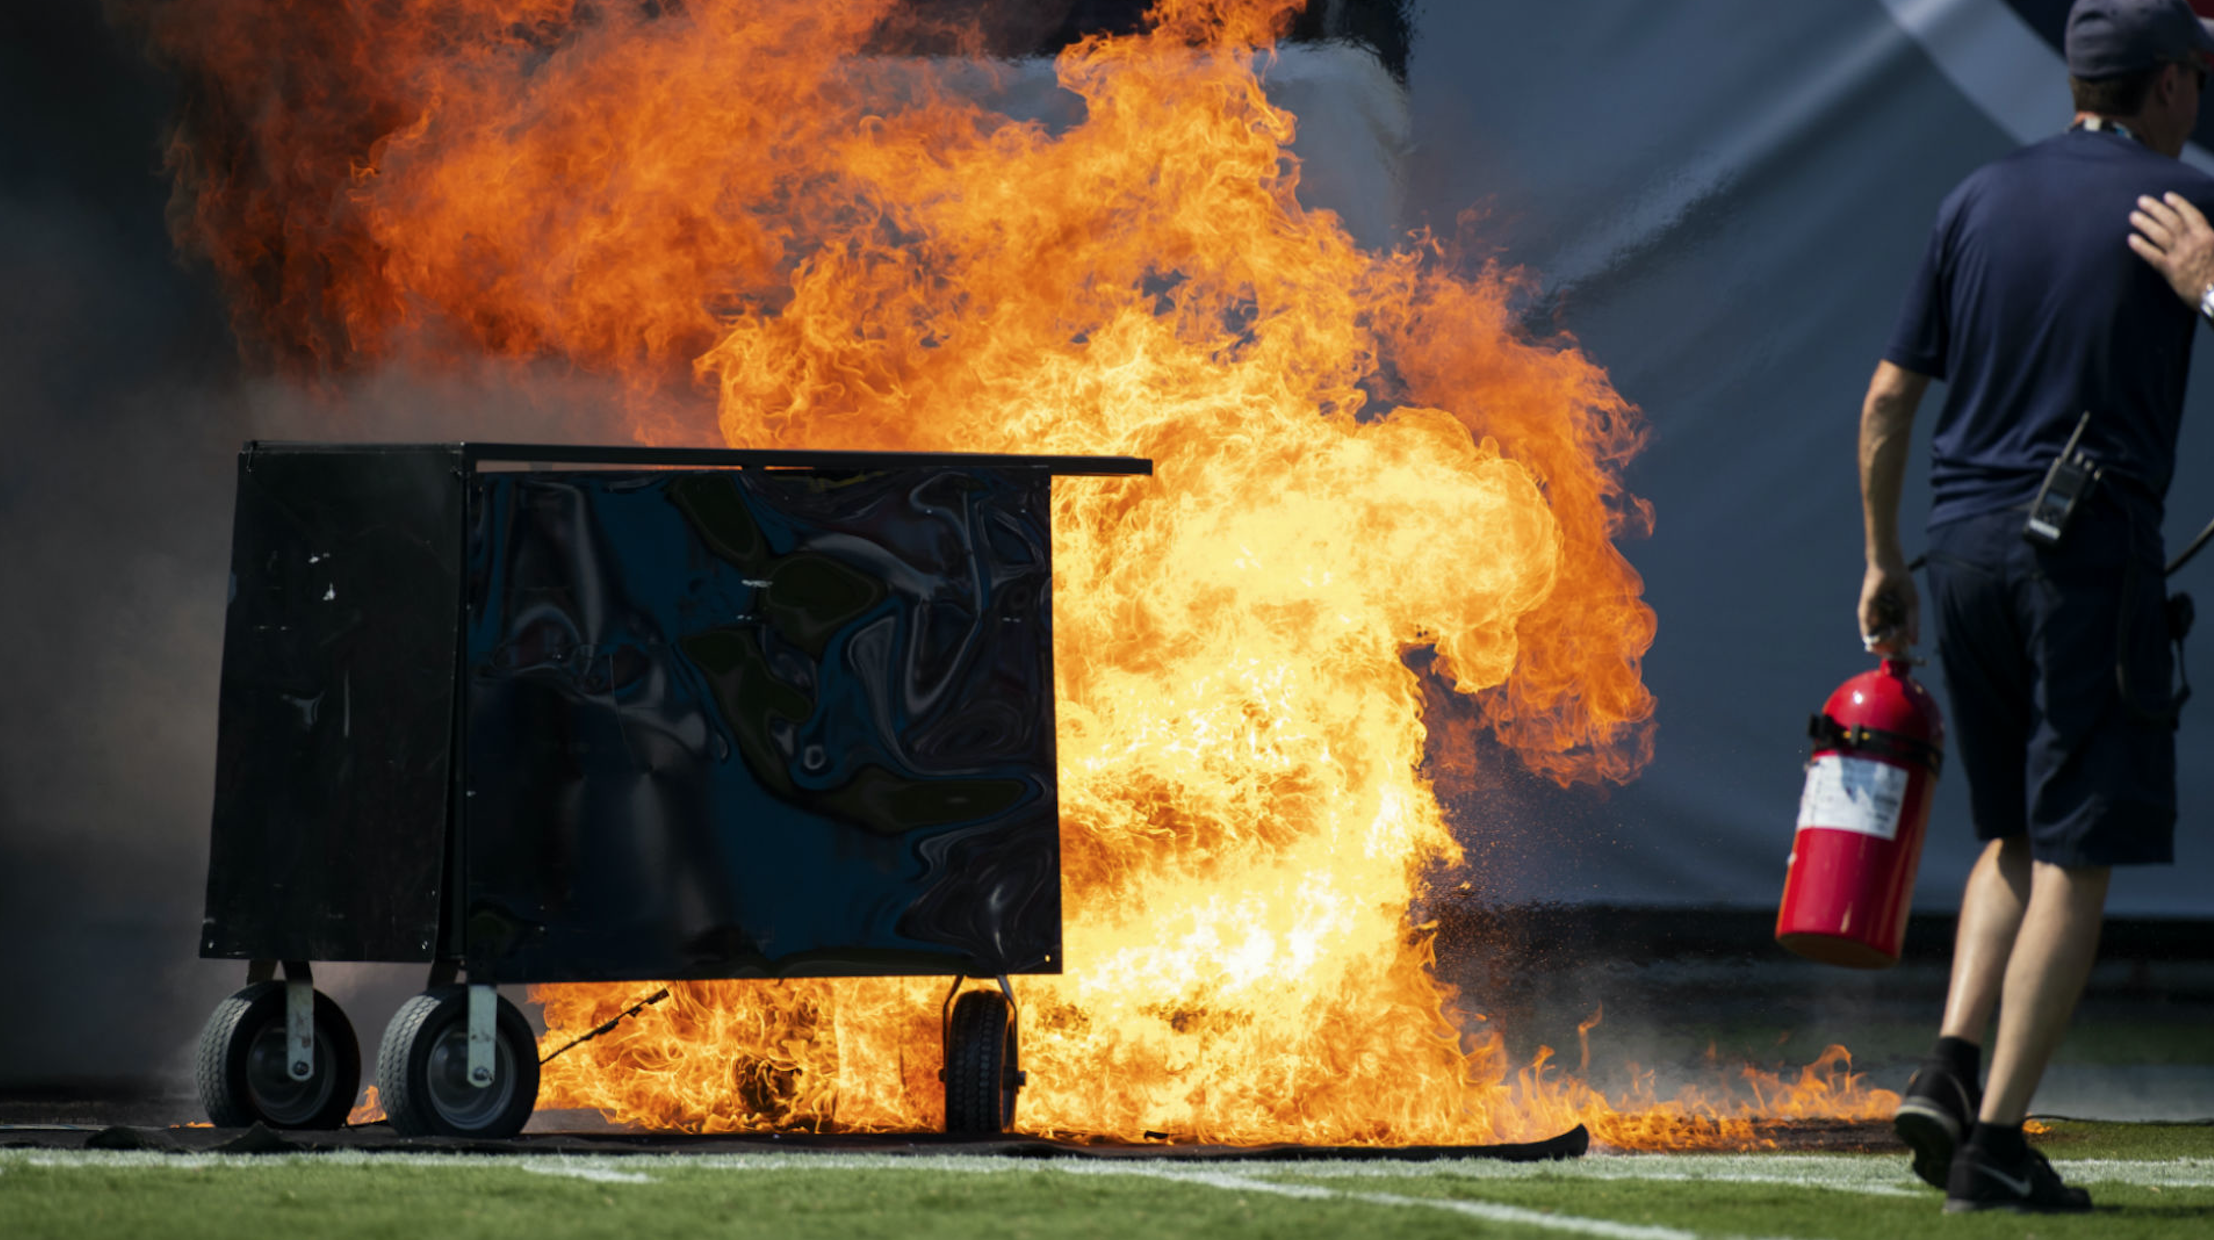 Plenty of jokes after fire delays Colts vs. Titans game at Nissan Stadium